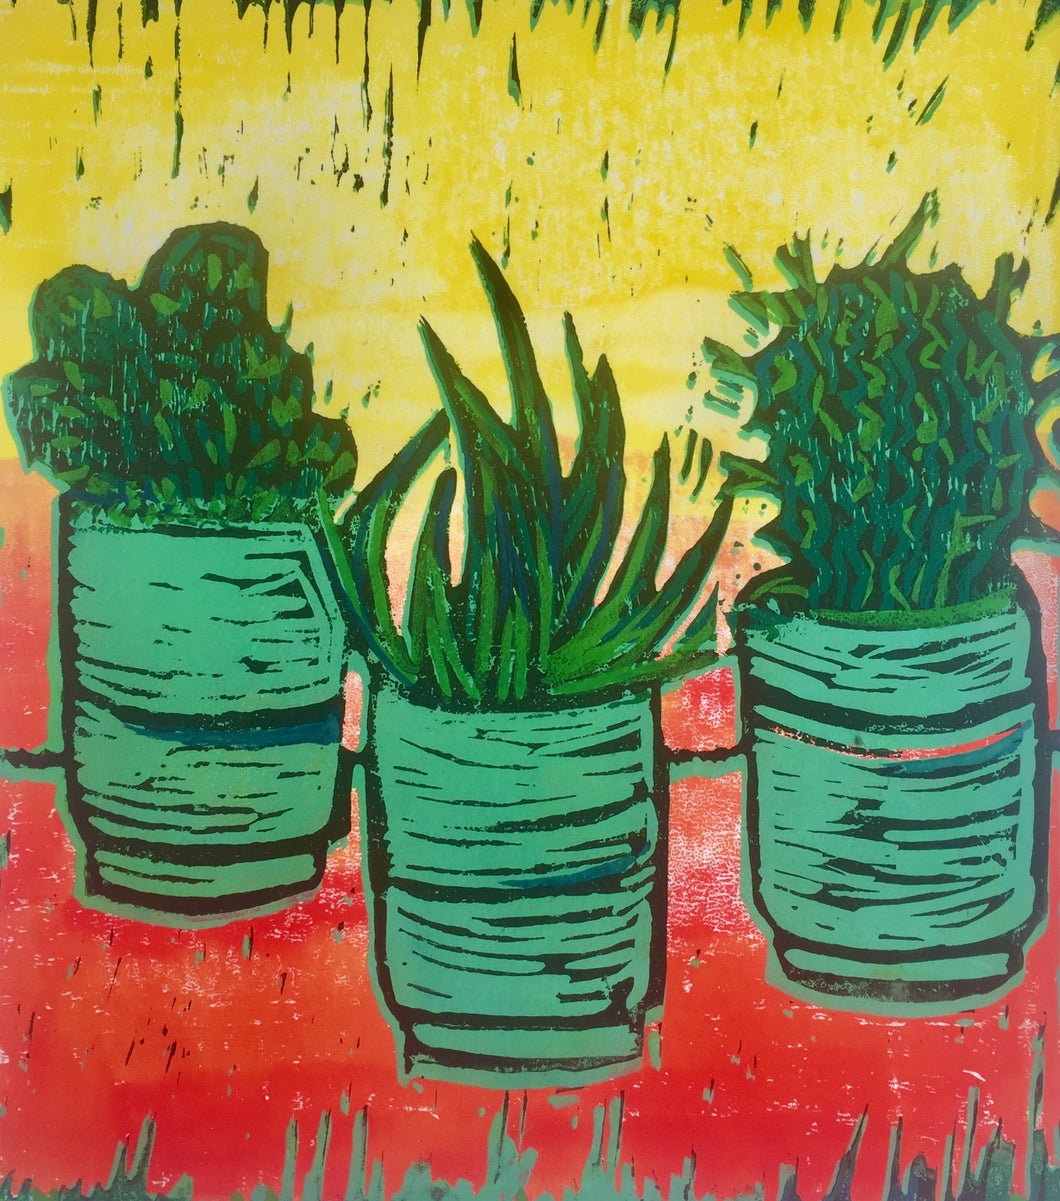 Cactus - potted plants III - yellow & red